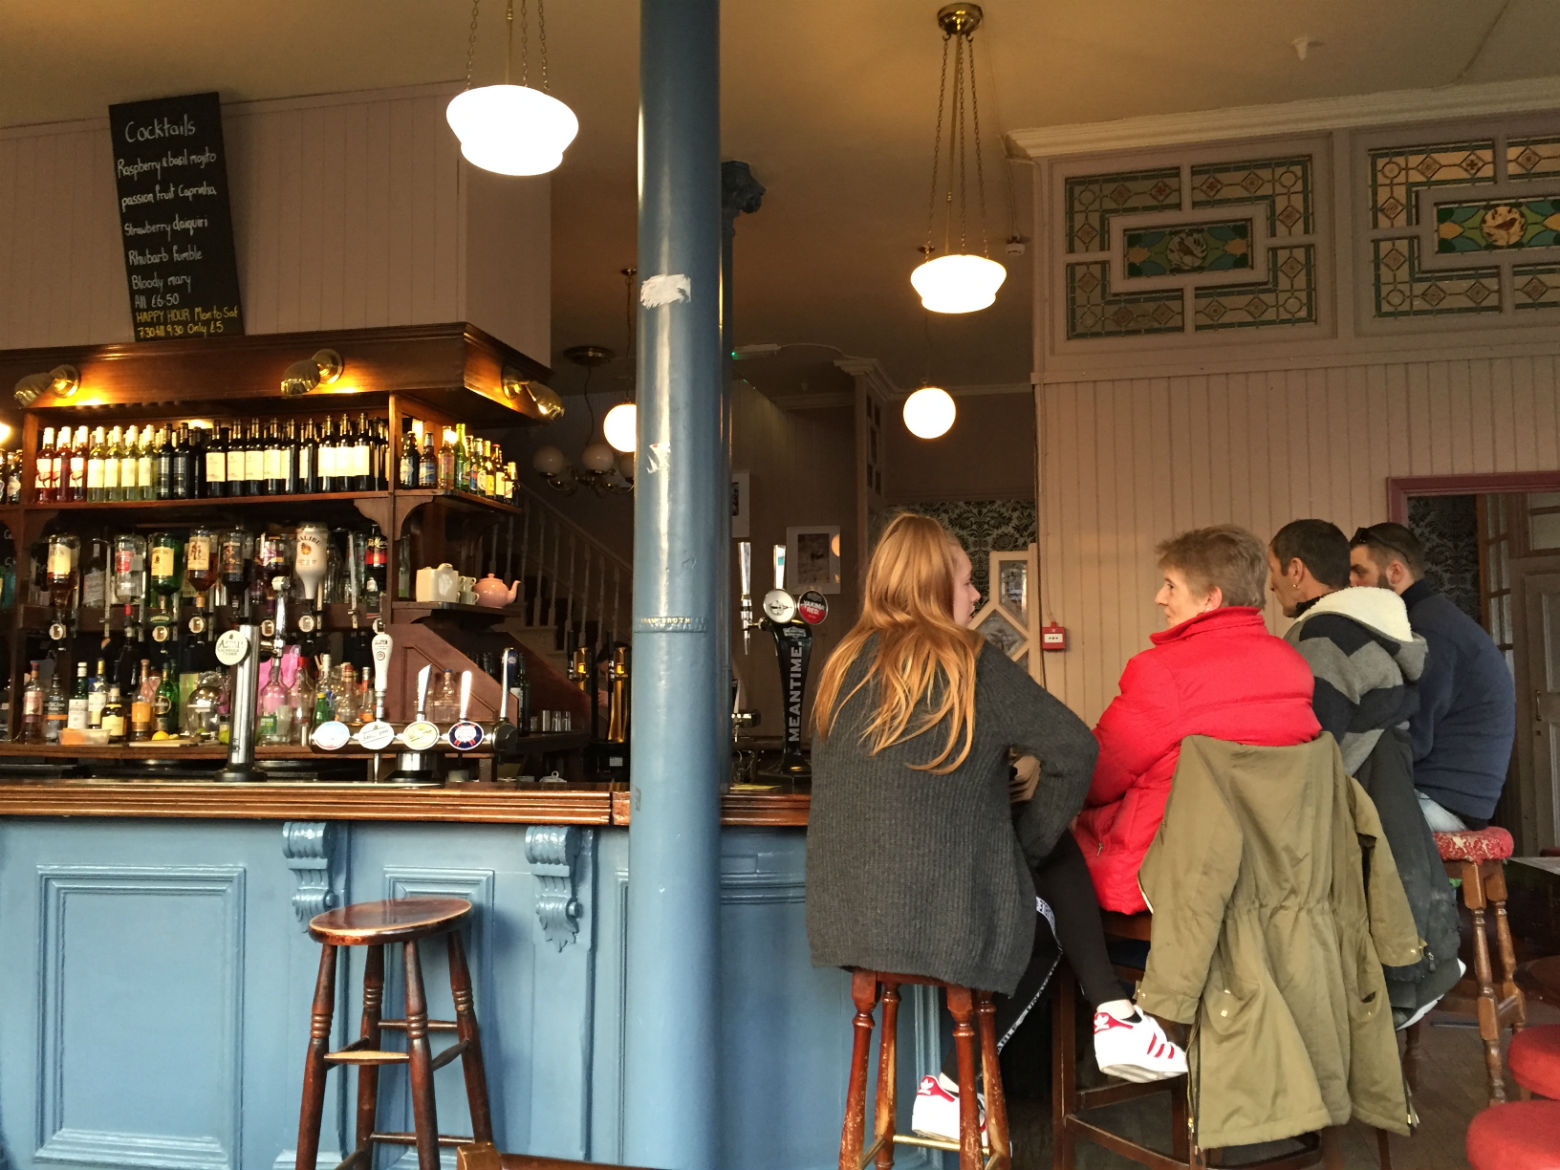 A nice afternoon at the Northcote. Photo: Stephen Emms